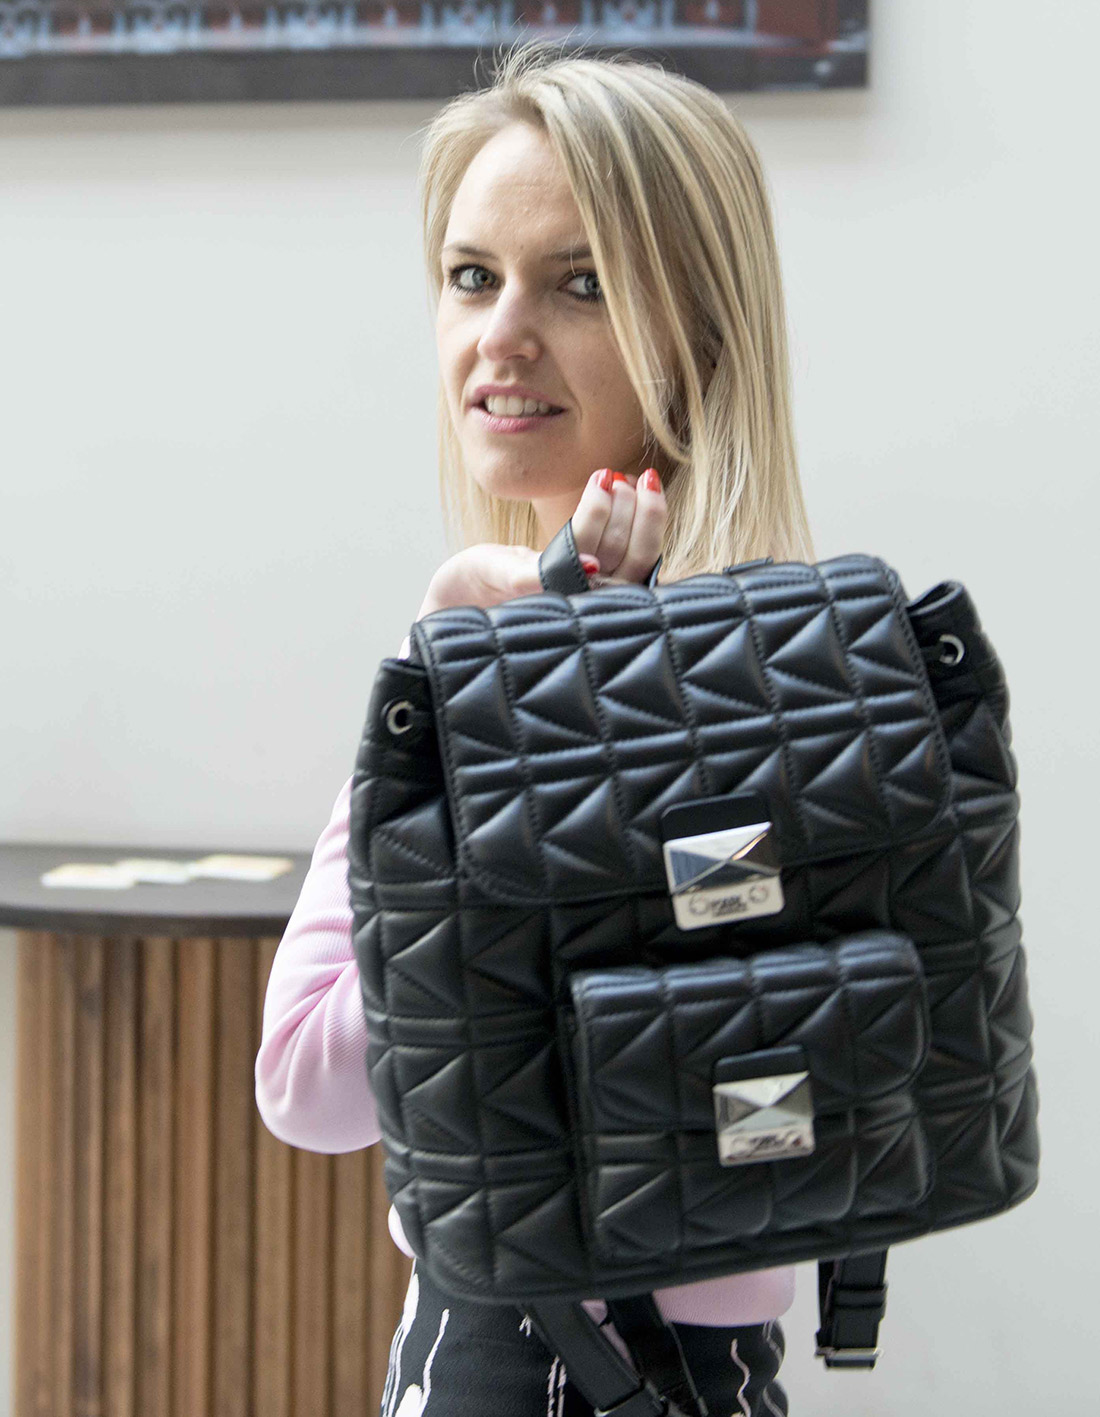 Bag-at-You---Fashion-Blog---Black-Backpack---Karl-Lagerfeld